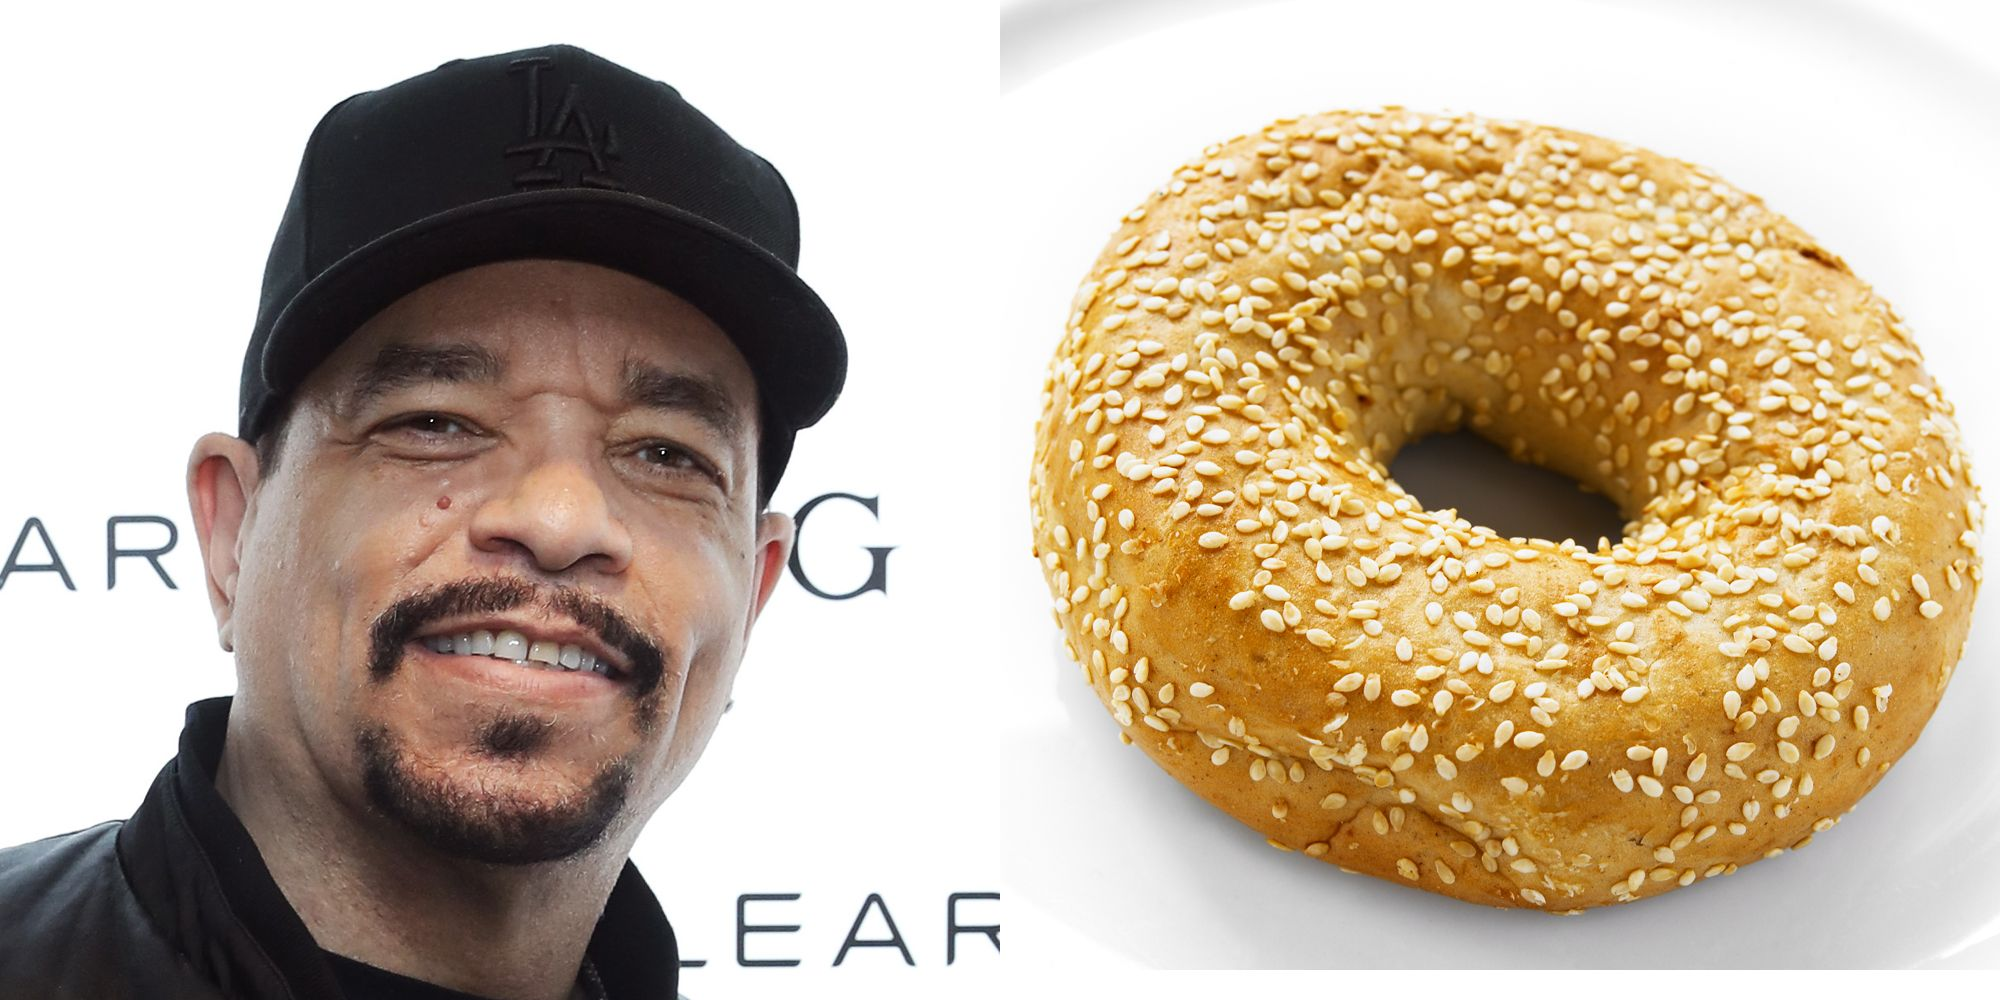 ICE T of Law and Order: SVU fame has claimed to never have had a cup of coffee or eaten a bagel.